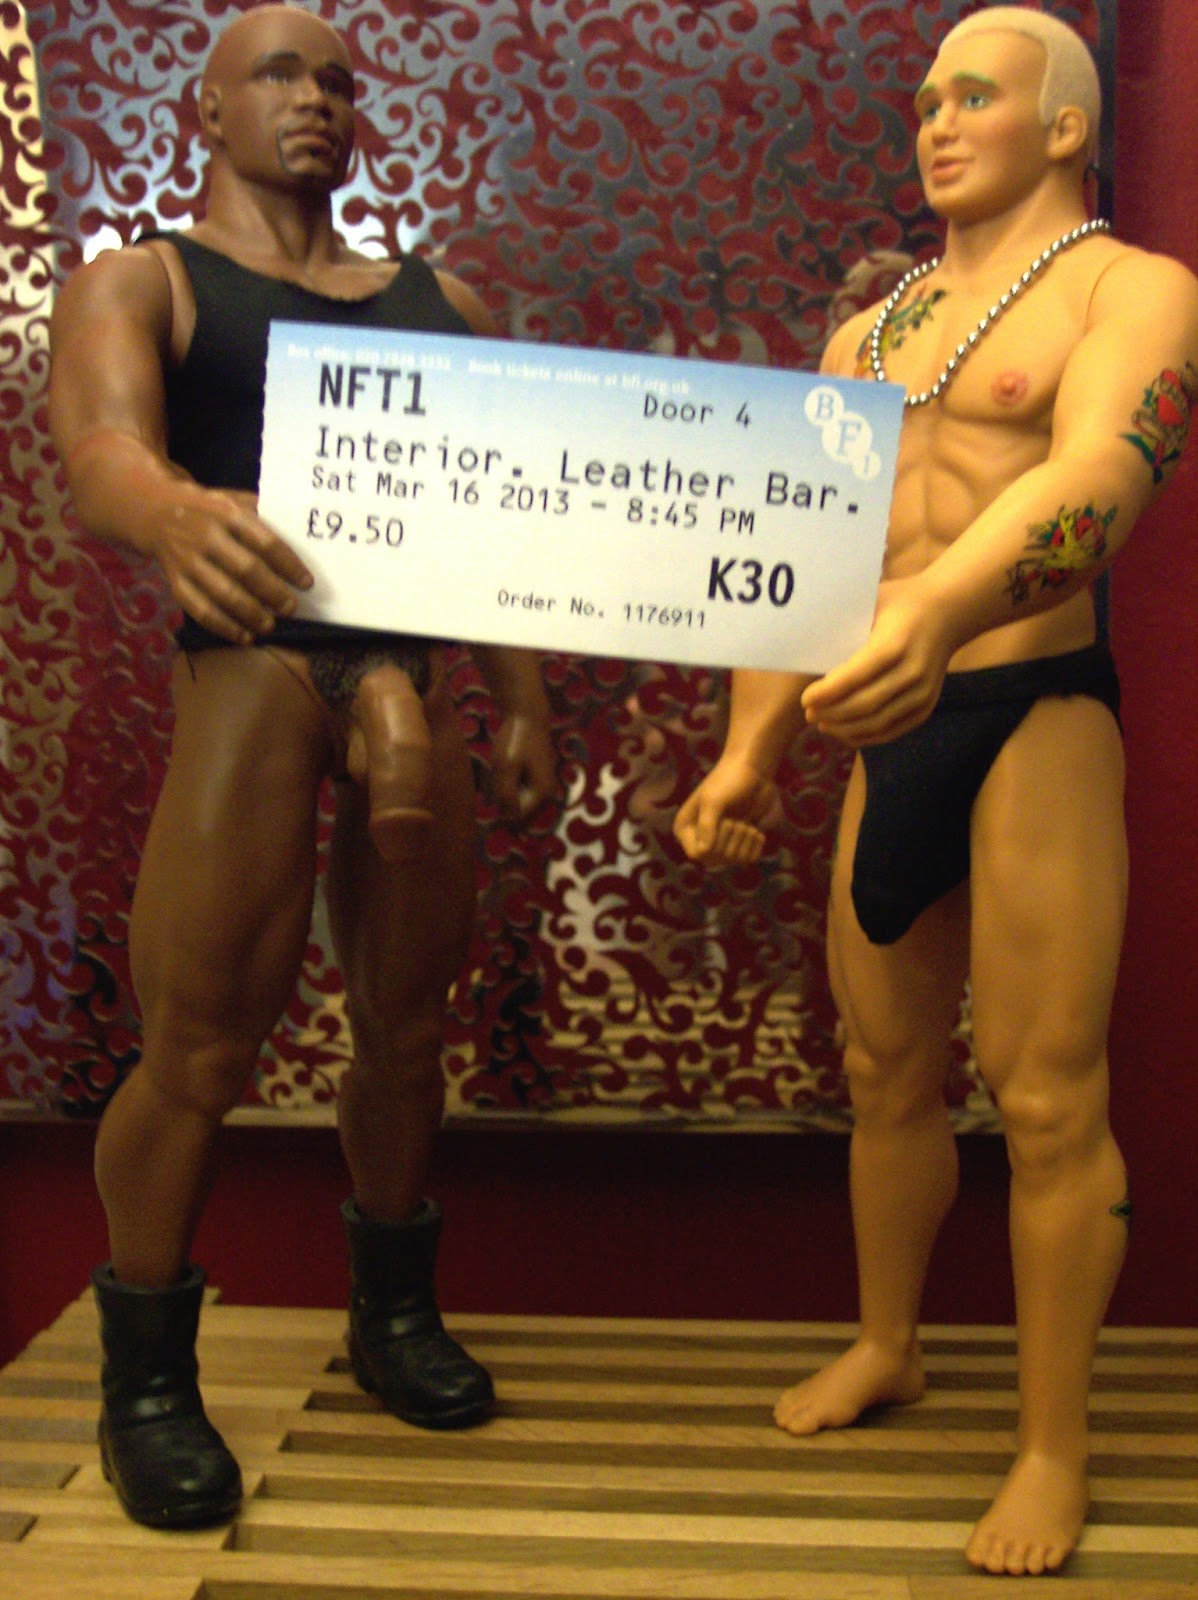 from Amir festival film gay lesbian london